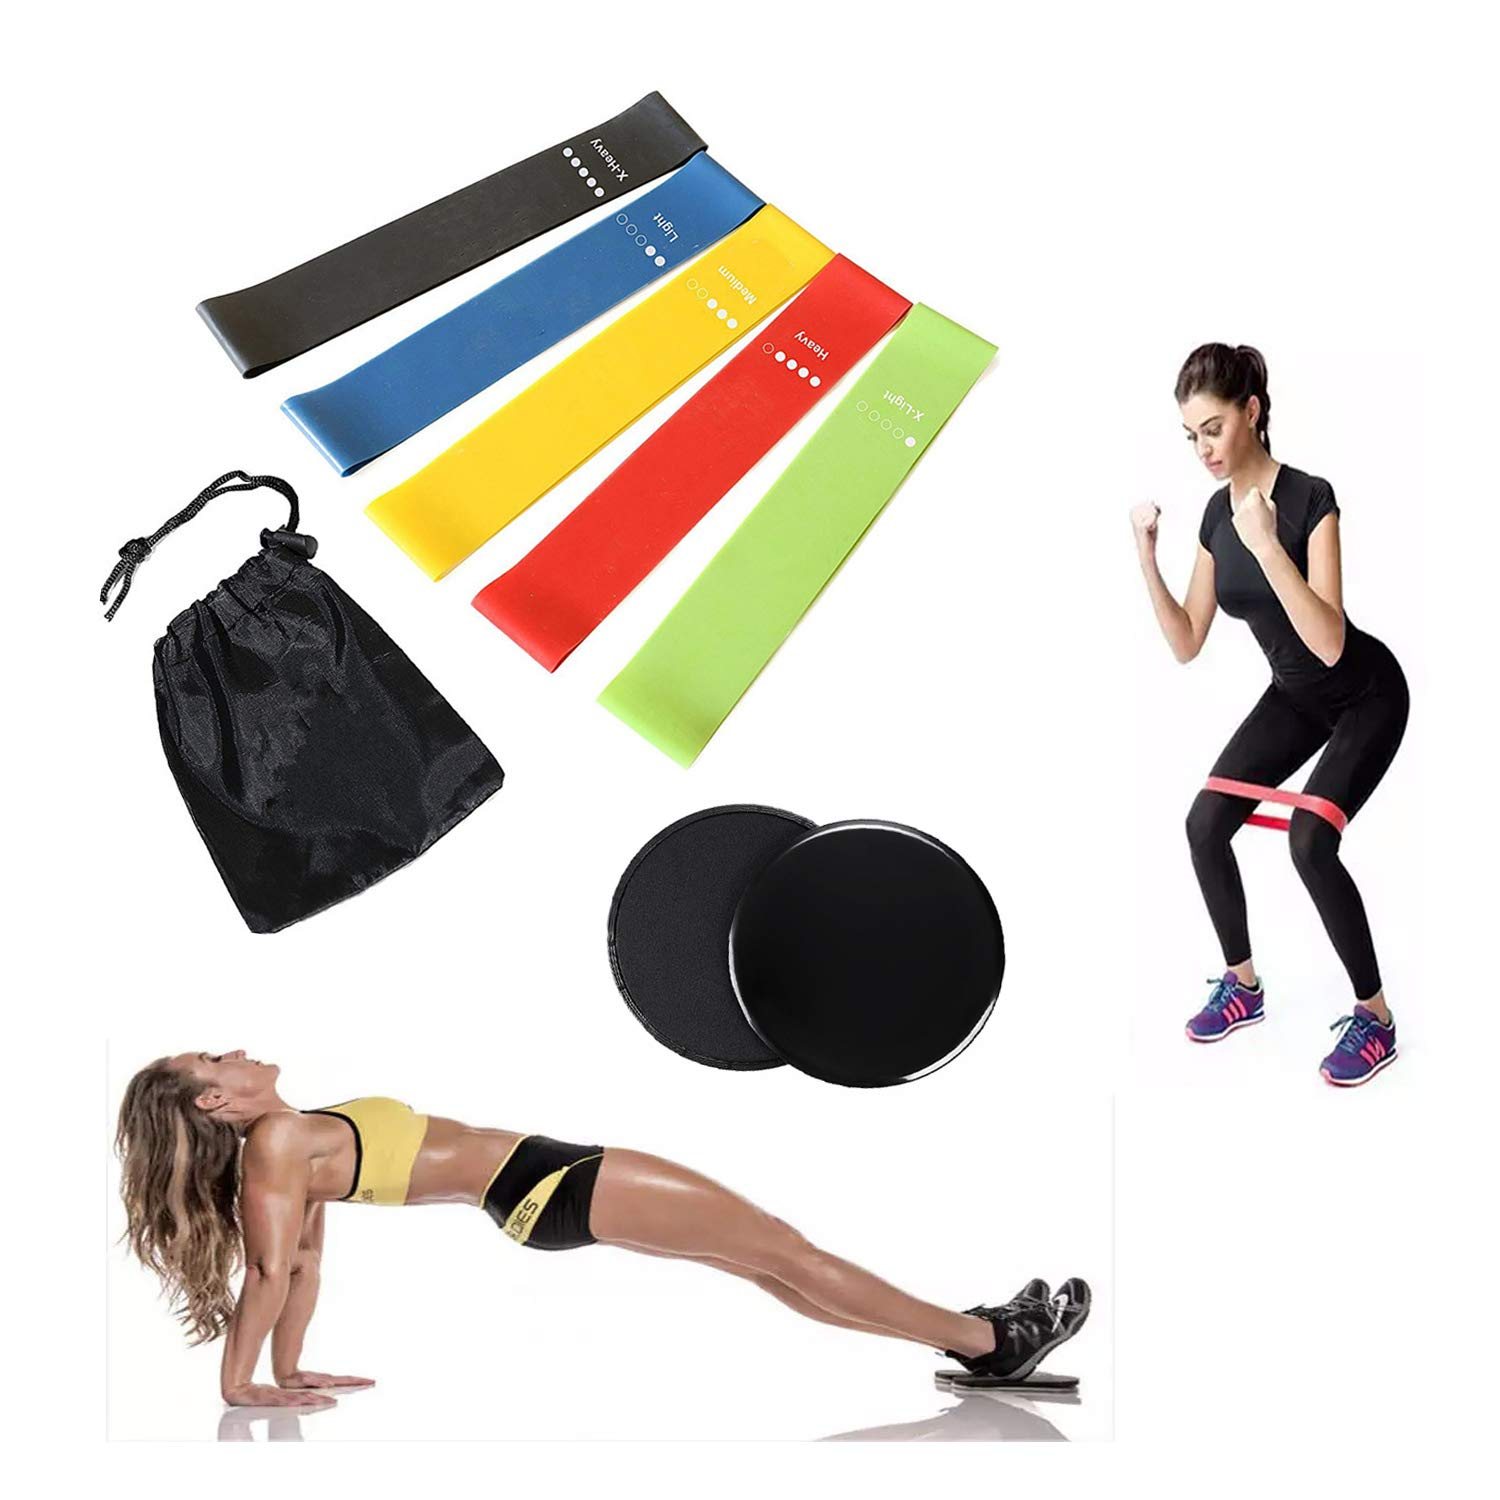 iFunLong Exercise Loop Resistance Bands Latex Free & Core Sliders Glides For Legs Home Gym Workout, Gliding Discs & Stretch Bands For Yoga Crossfit Fitness Body Building Men Women FG-ZQTG-RCFP